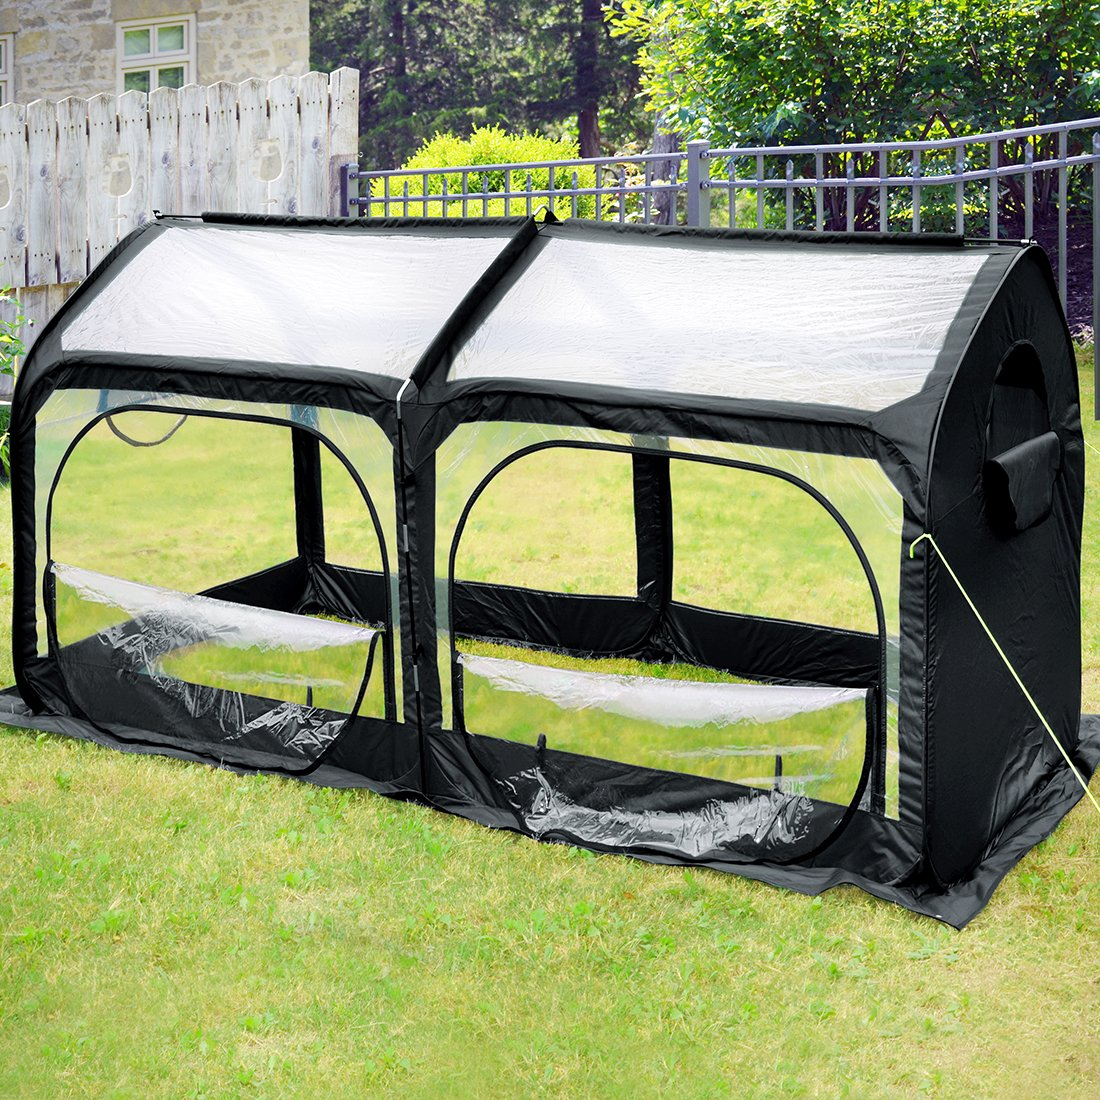 Quictent Pop up Mini Greenhouse for Indoor Outdoor 98 x49 x53  Portable Eco -Friendly Green Hot House with Fiberglass Poles 6 Stakes 4 Zipper Doors ... & Amazon.com : Quictent Pop up Mini Greenhouse for Indoor Outdoor 98 ...